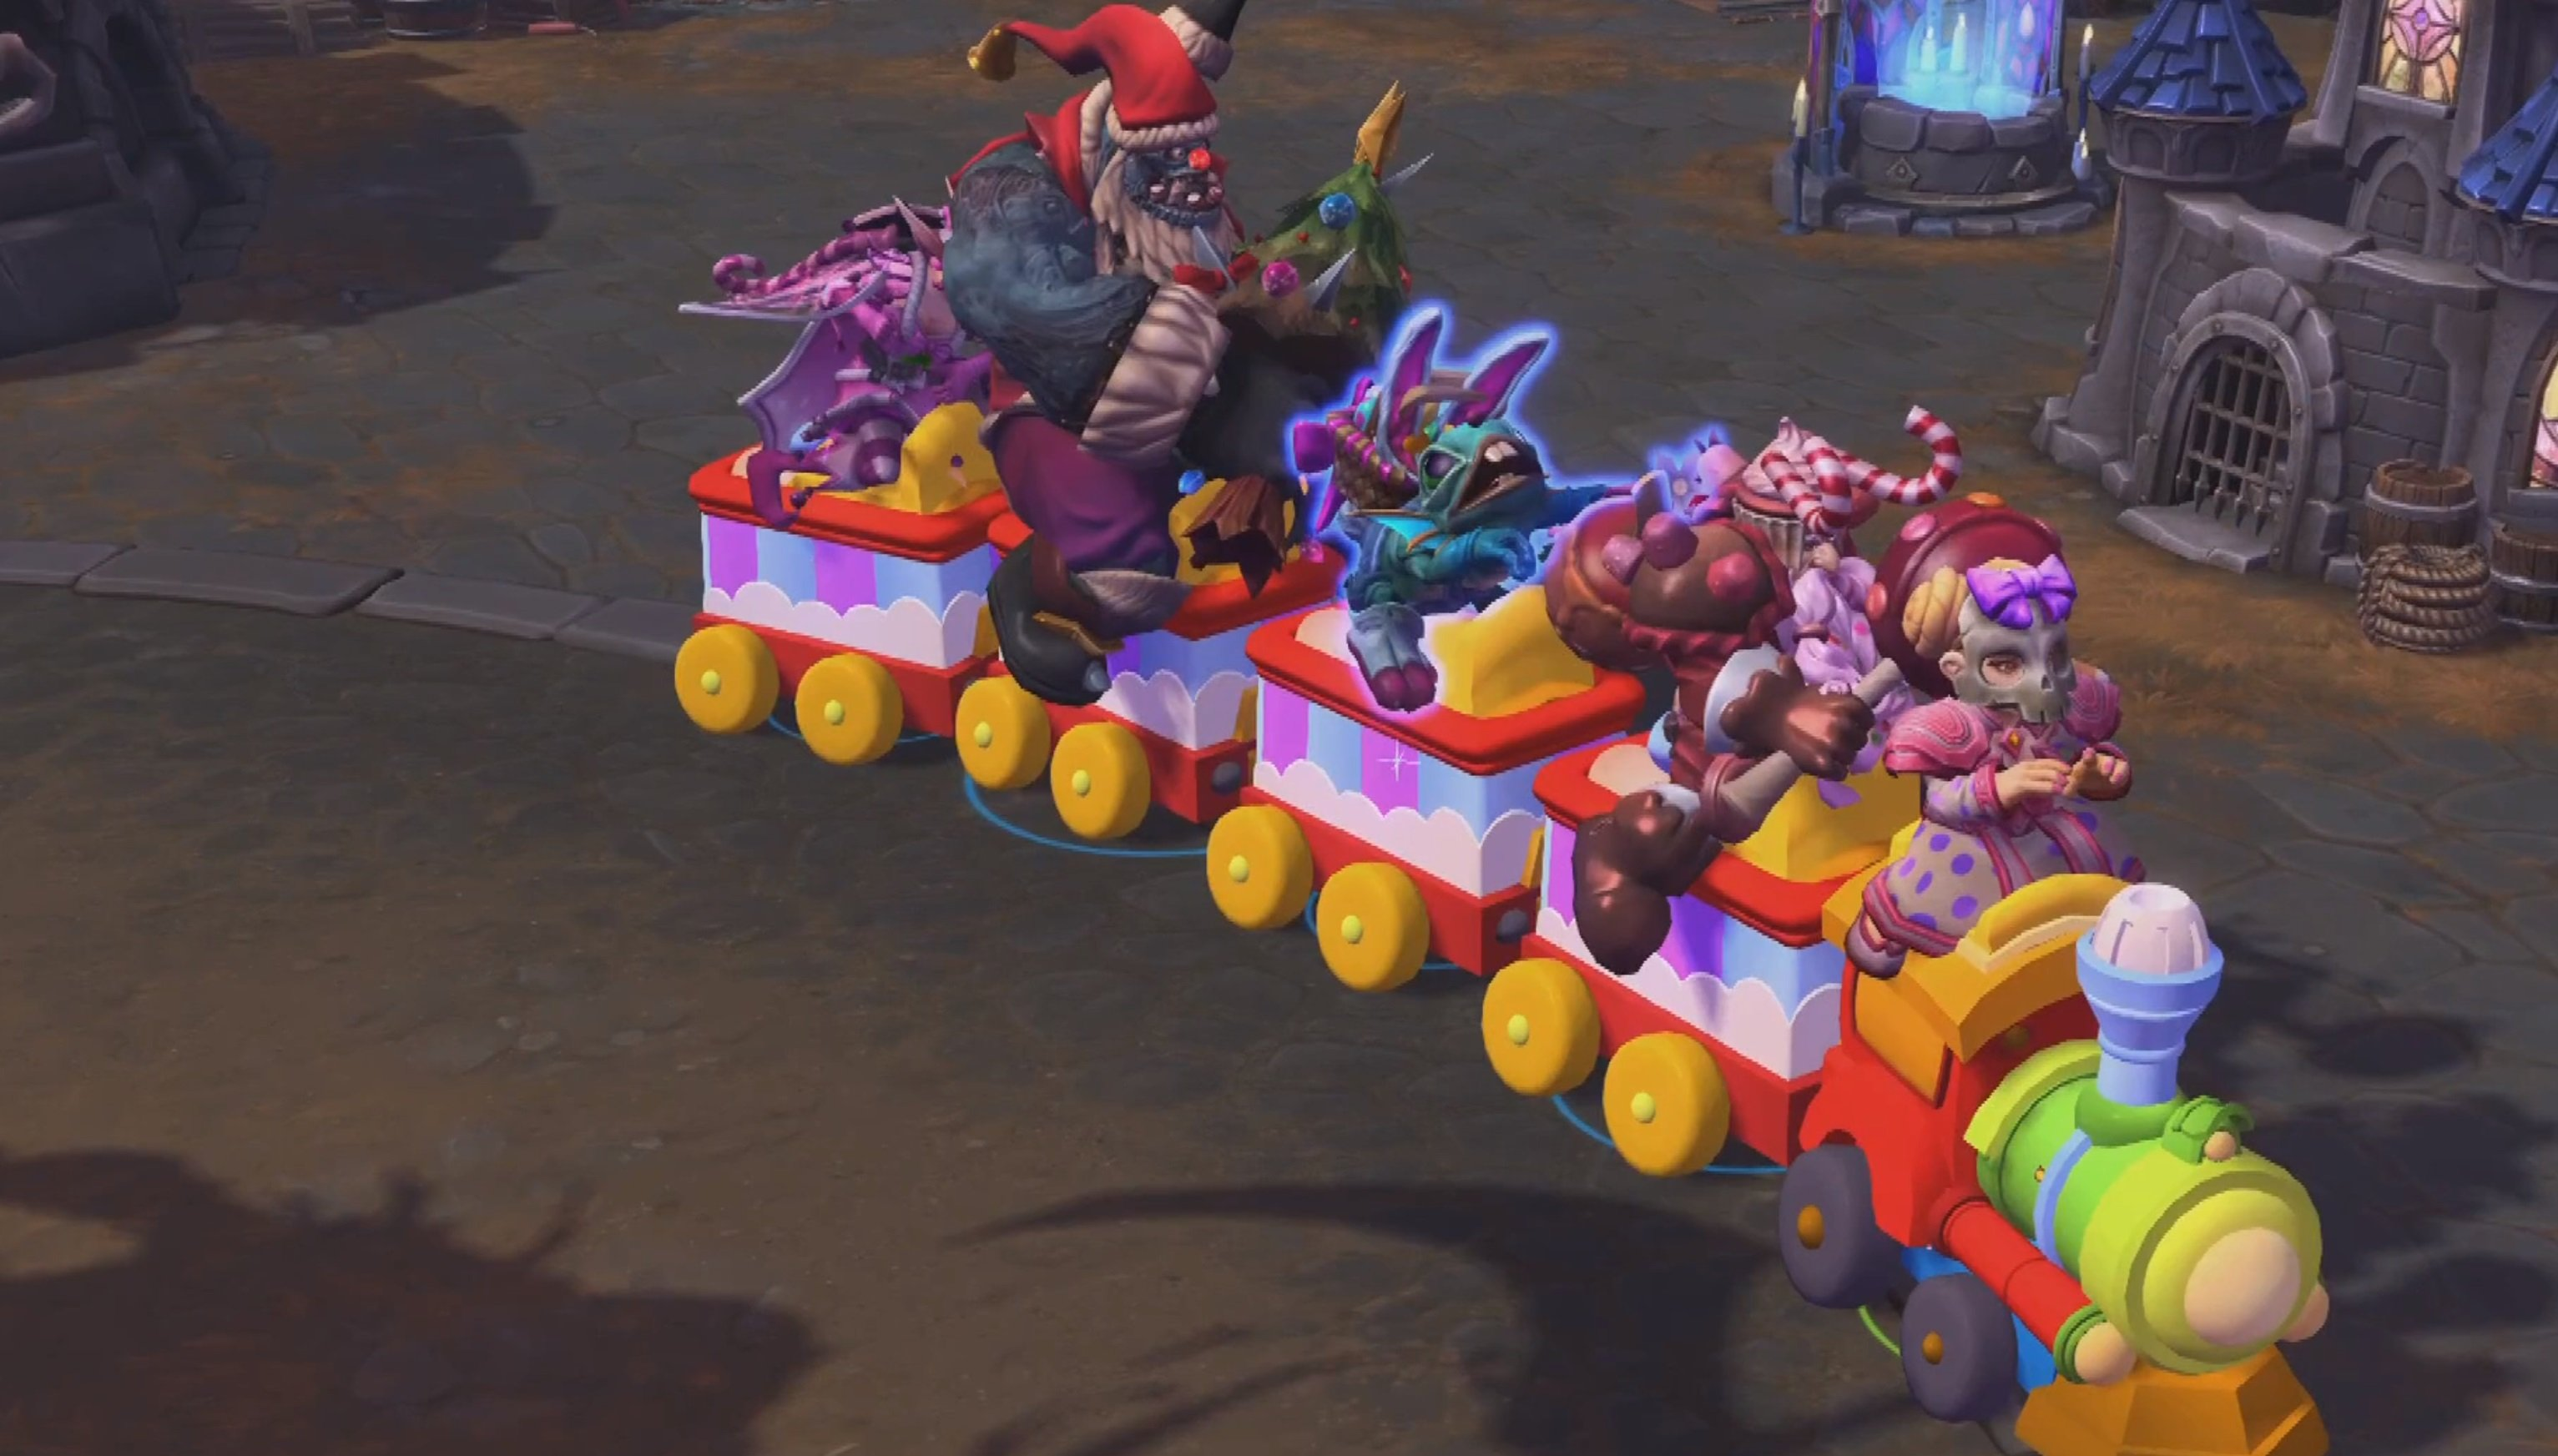 Heroes of the Storm is getting a literal 'pain train' mount that fits the entire team, as well as Muppet Mephisto screenshot